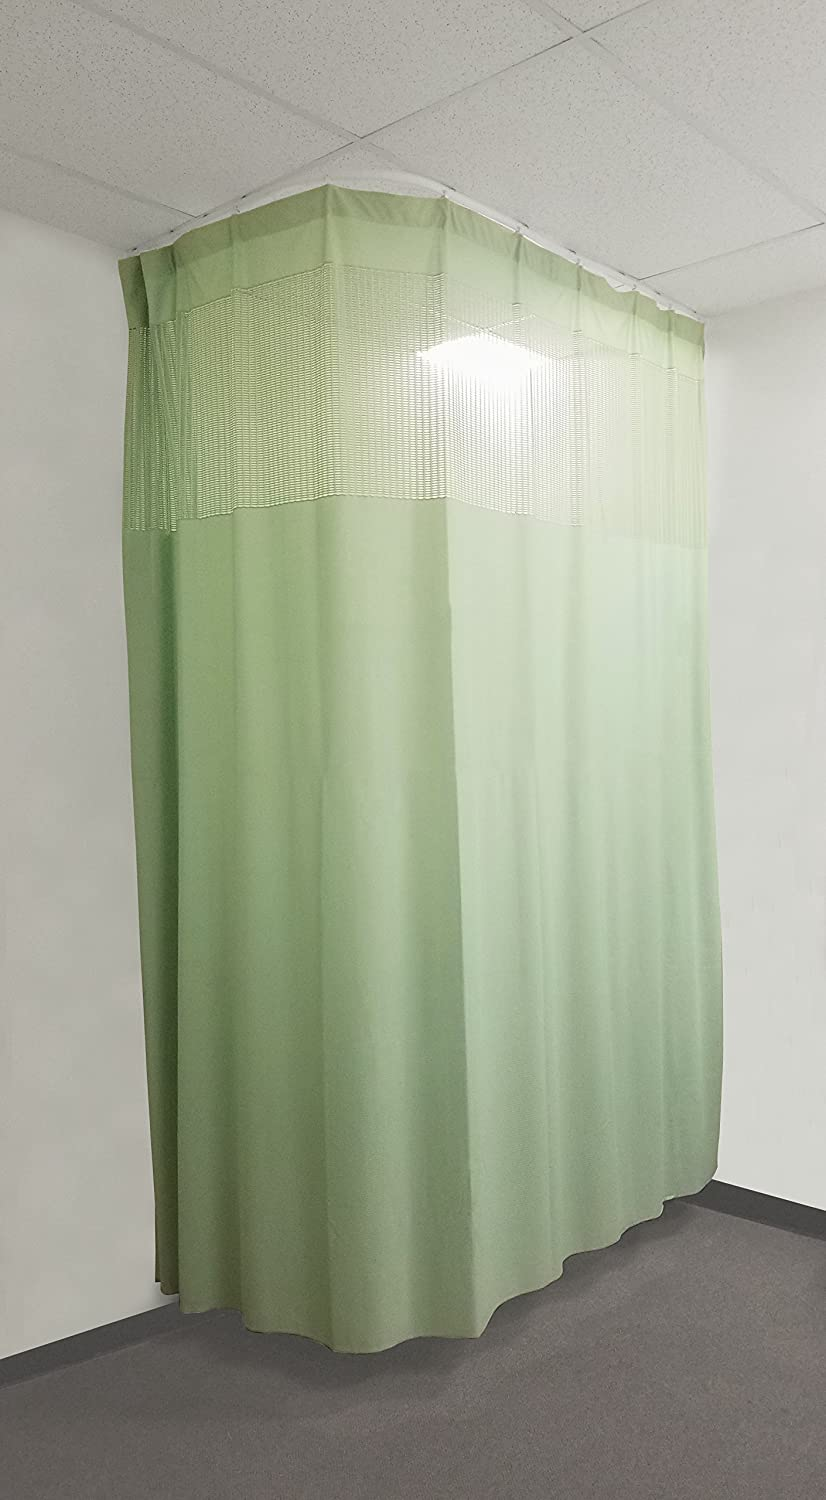 10 Ft Medical Curtains w/ Track Hospital Lab Clinic Room- 10ft High (green)